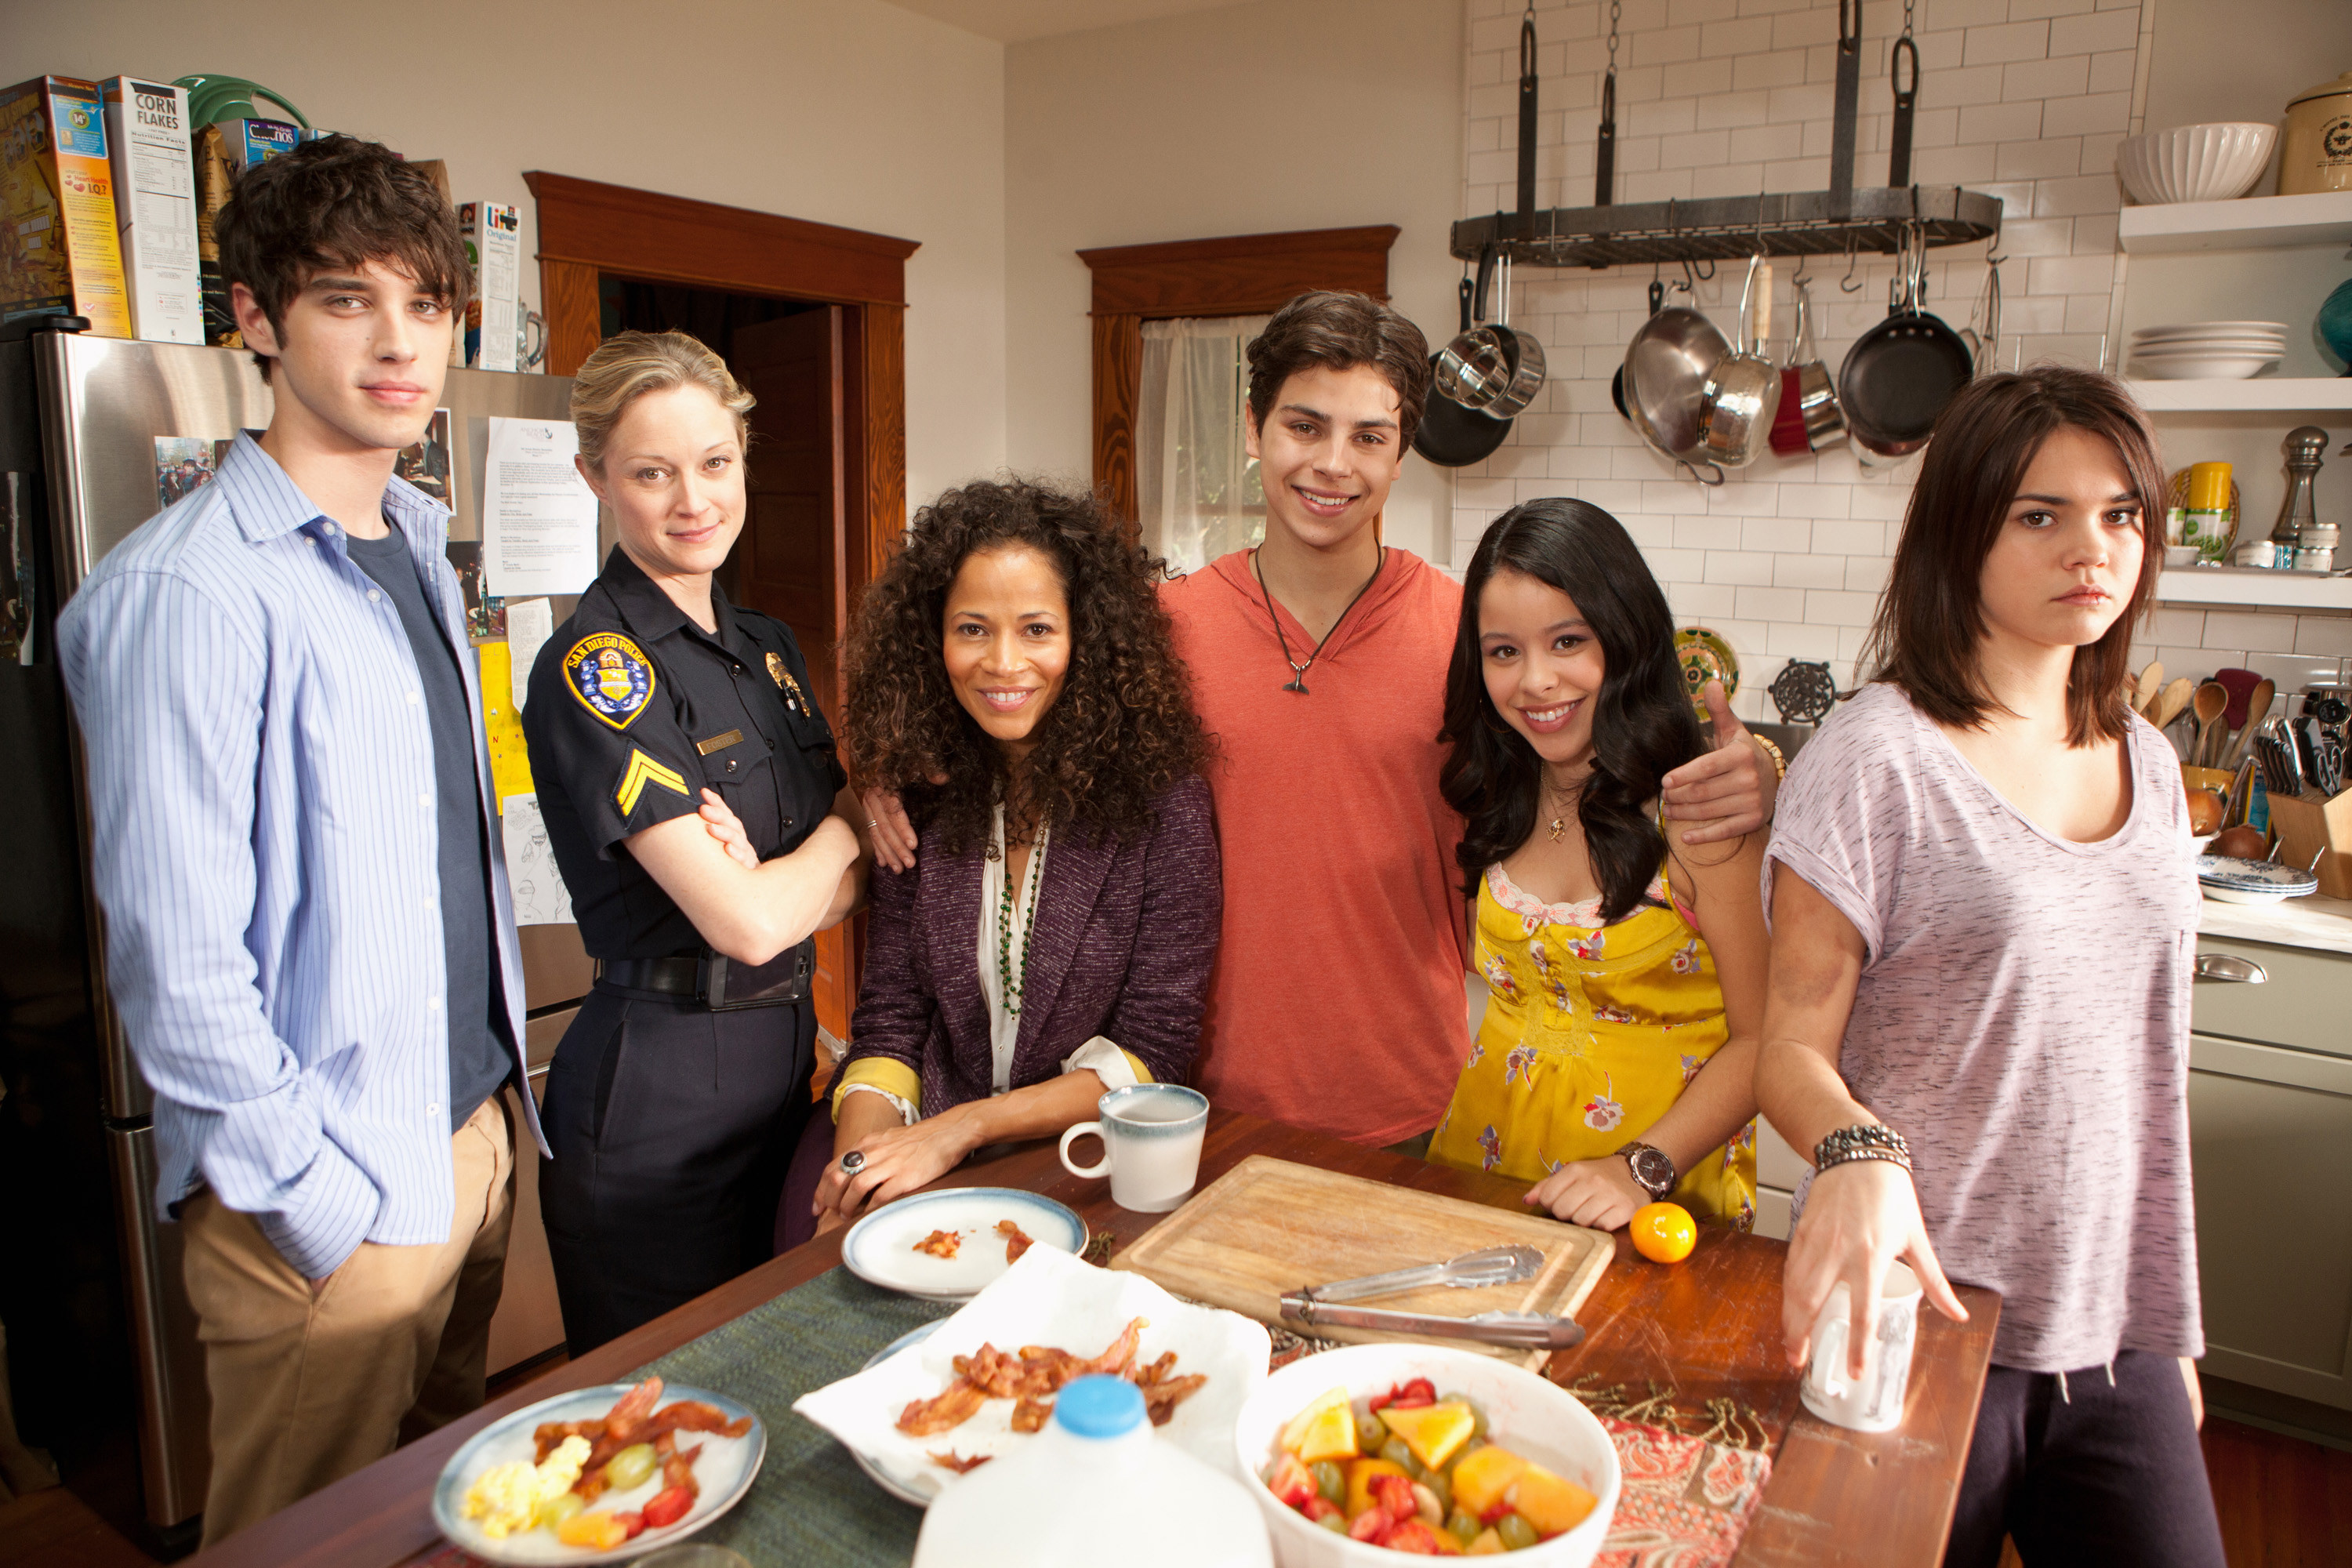 the Fosters family